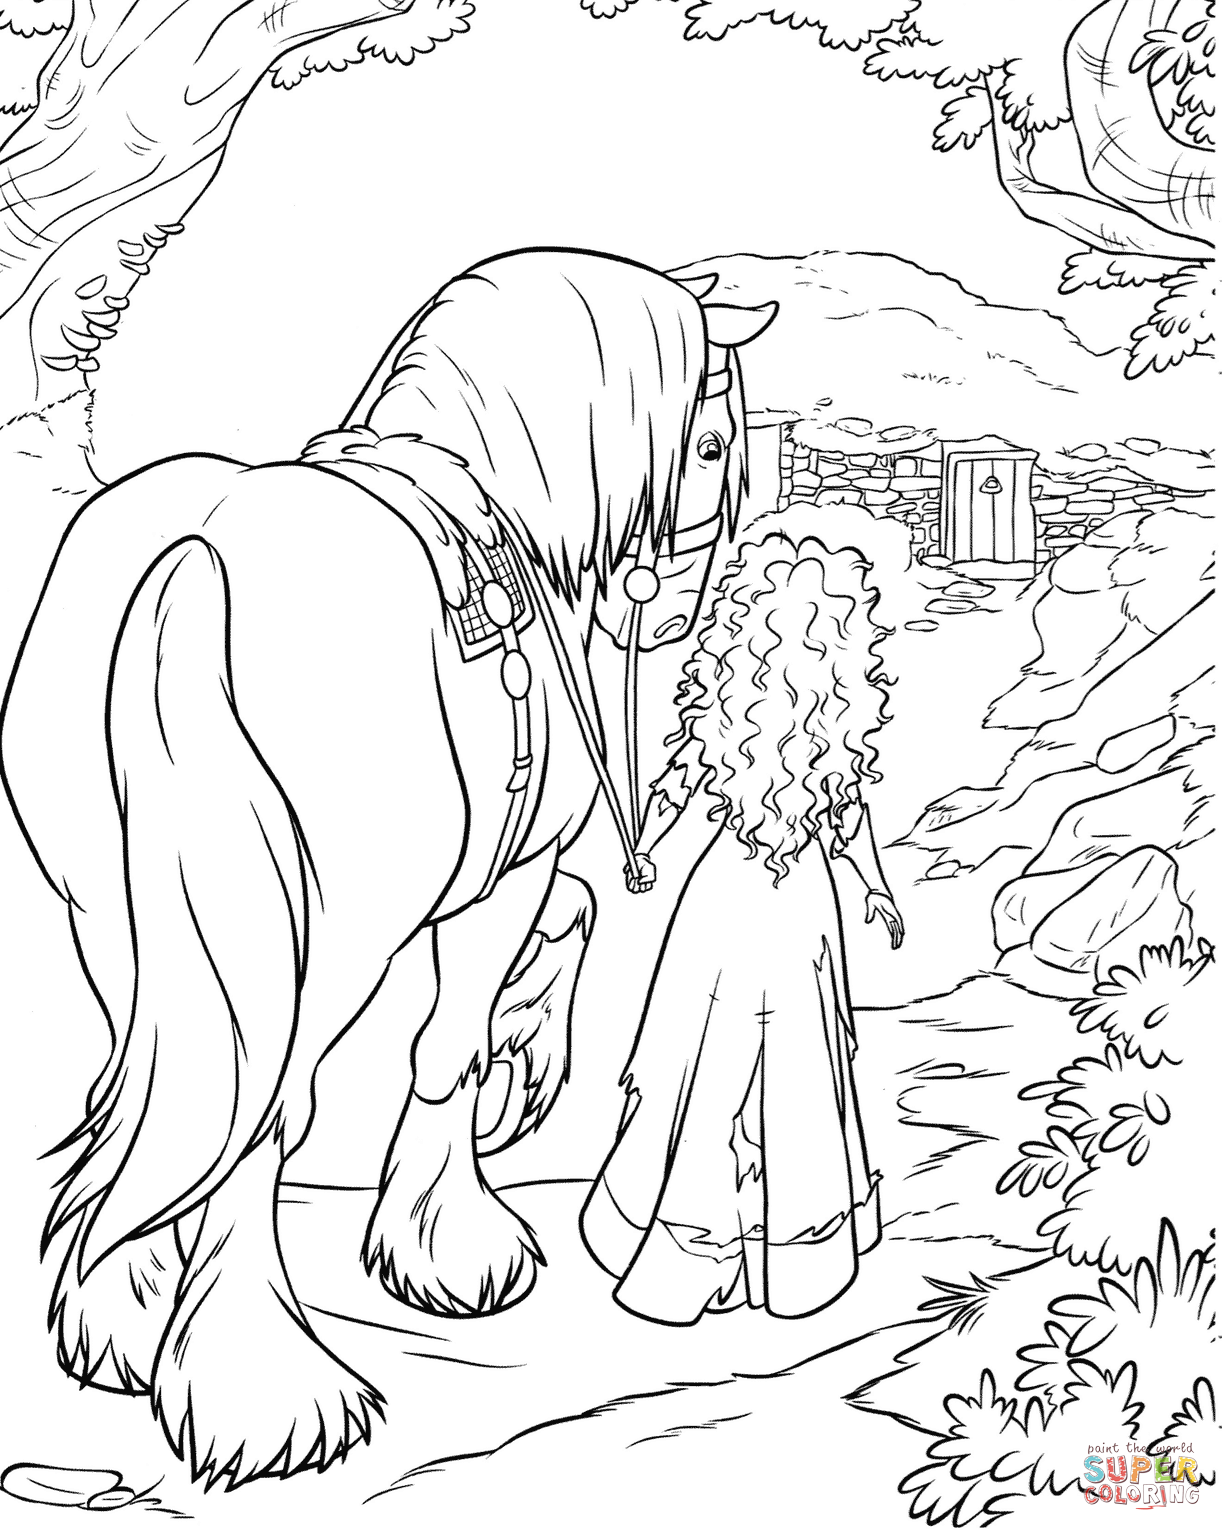 Merida And Angus Coloring Page From Brave Category Select From 27788 Printable C Disney Coloring Pages Cartoon Coloring Pages Disney Coloring Pages Printables [ png ]